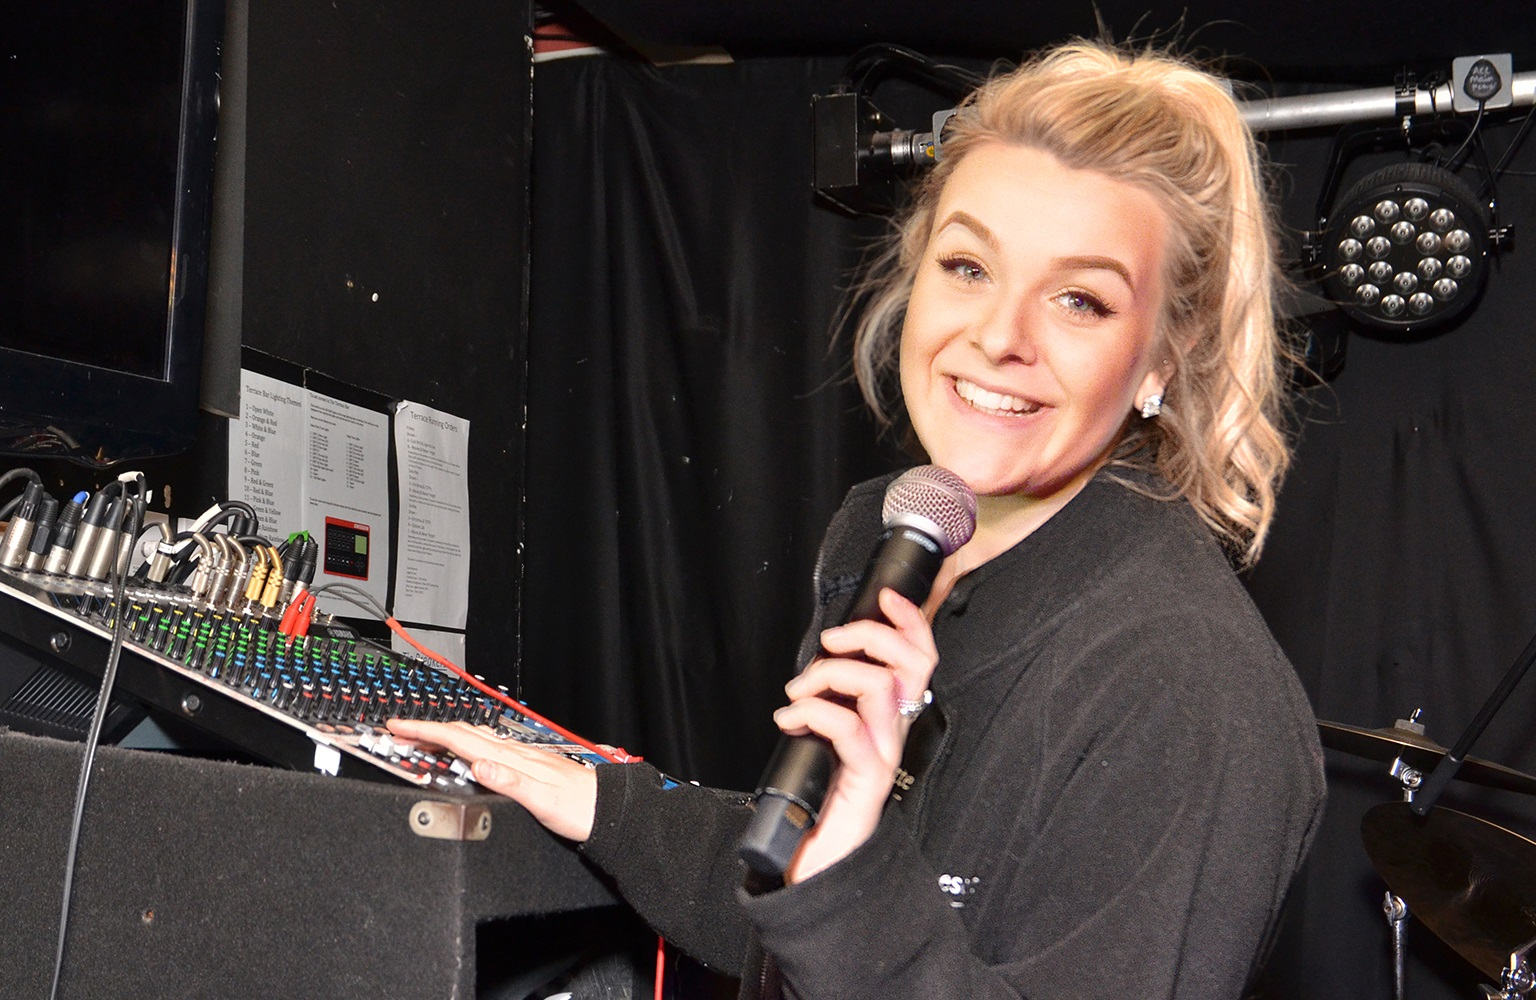 A day in the life of the day entertainments team…meet Chloe